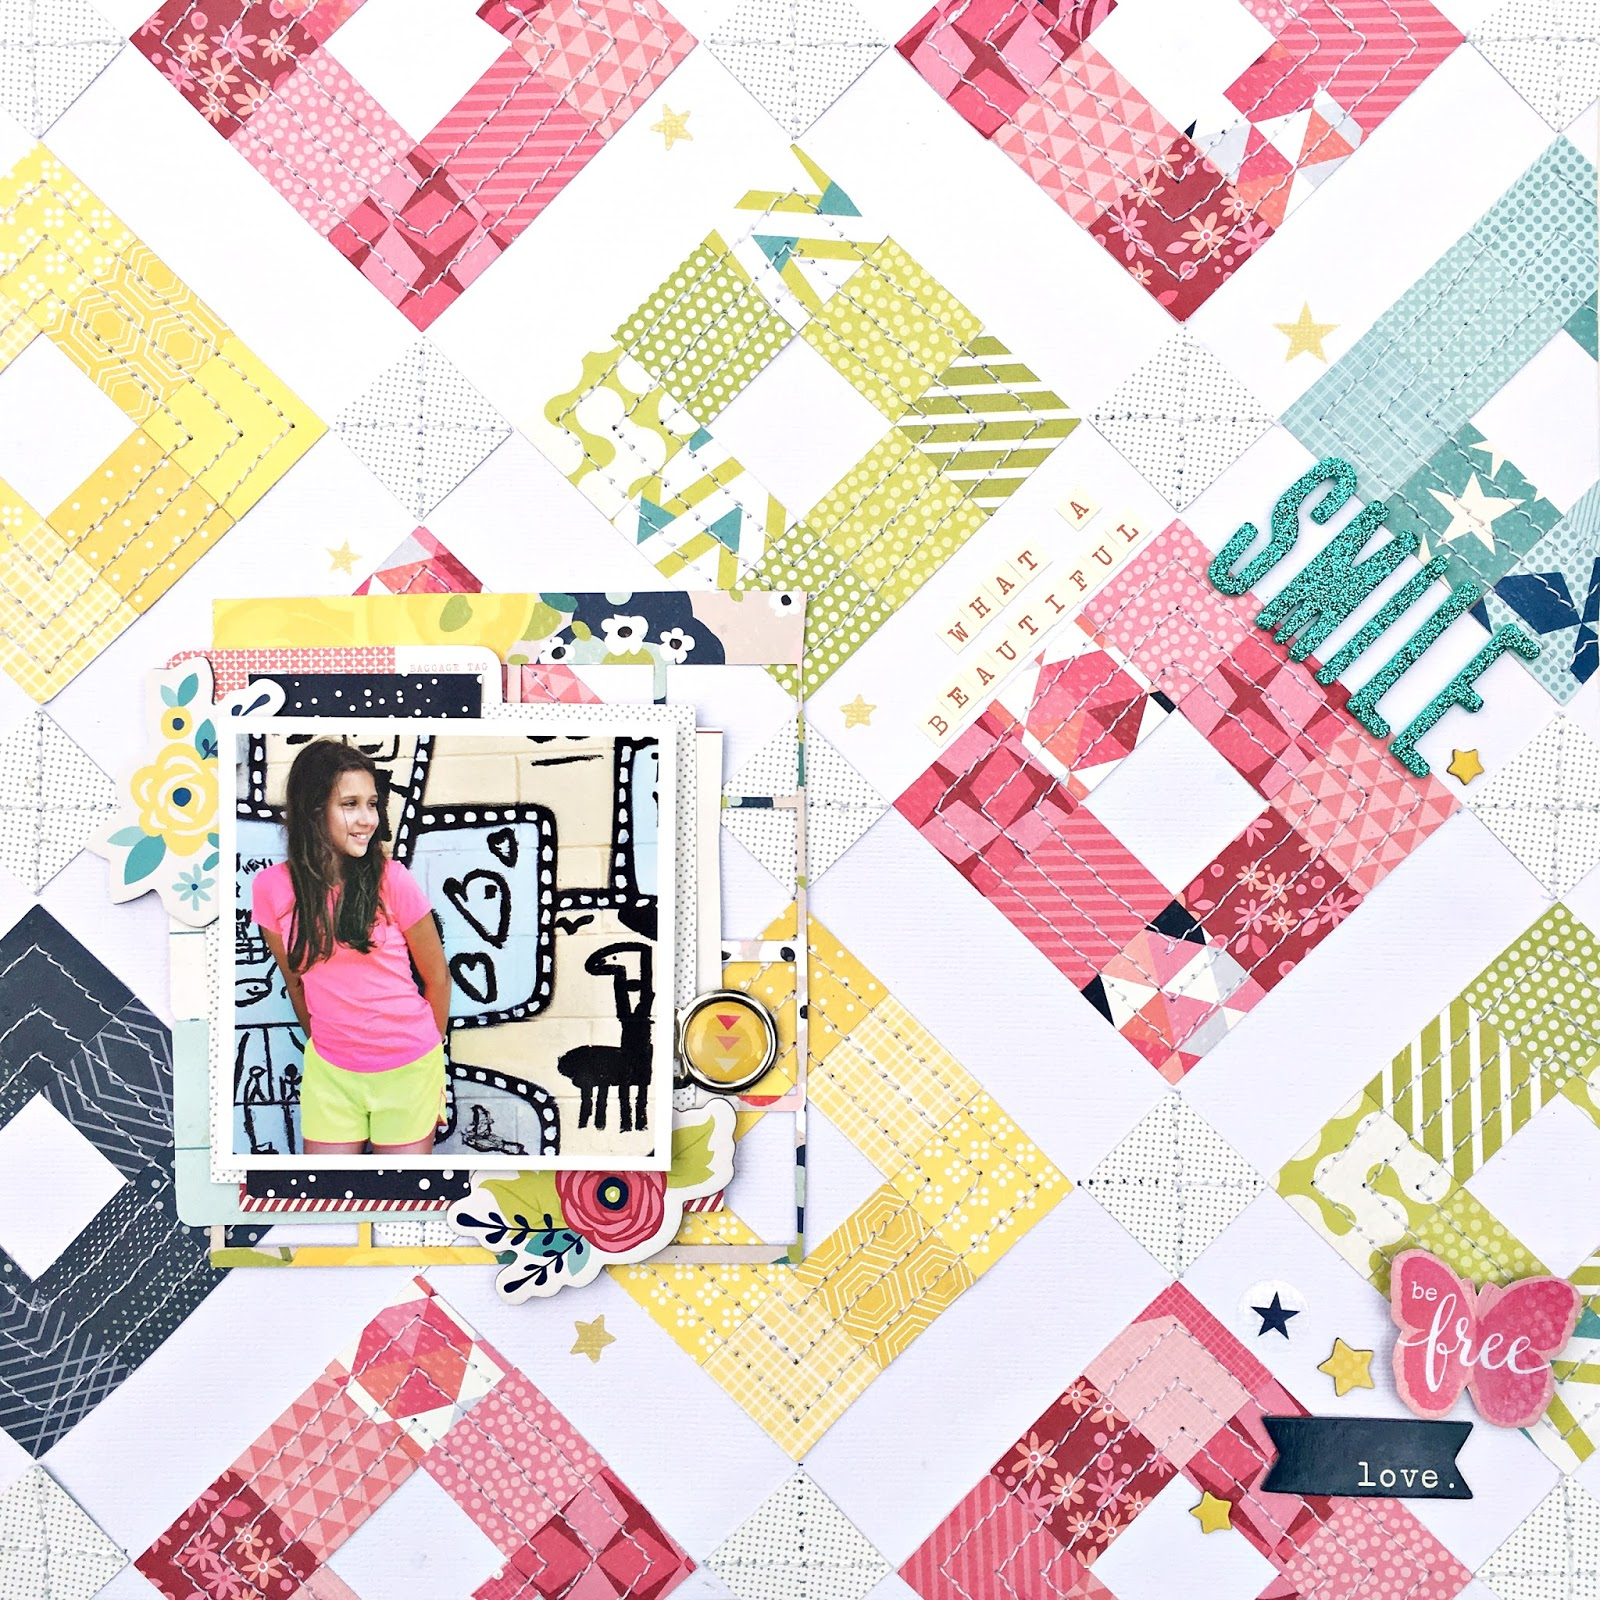 Heather Leopard: Beautiful Smile Scrapbooking Layout And